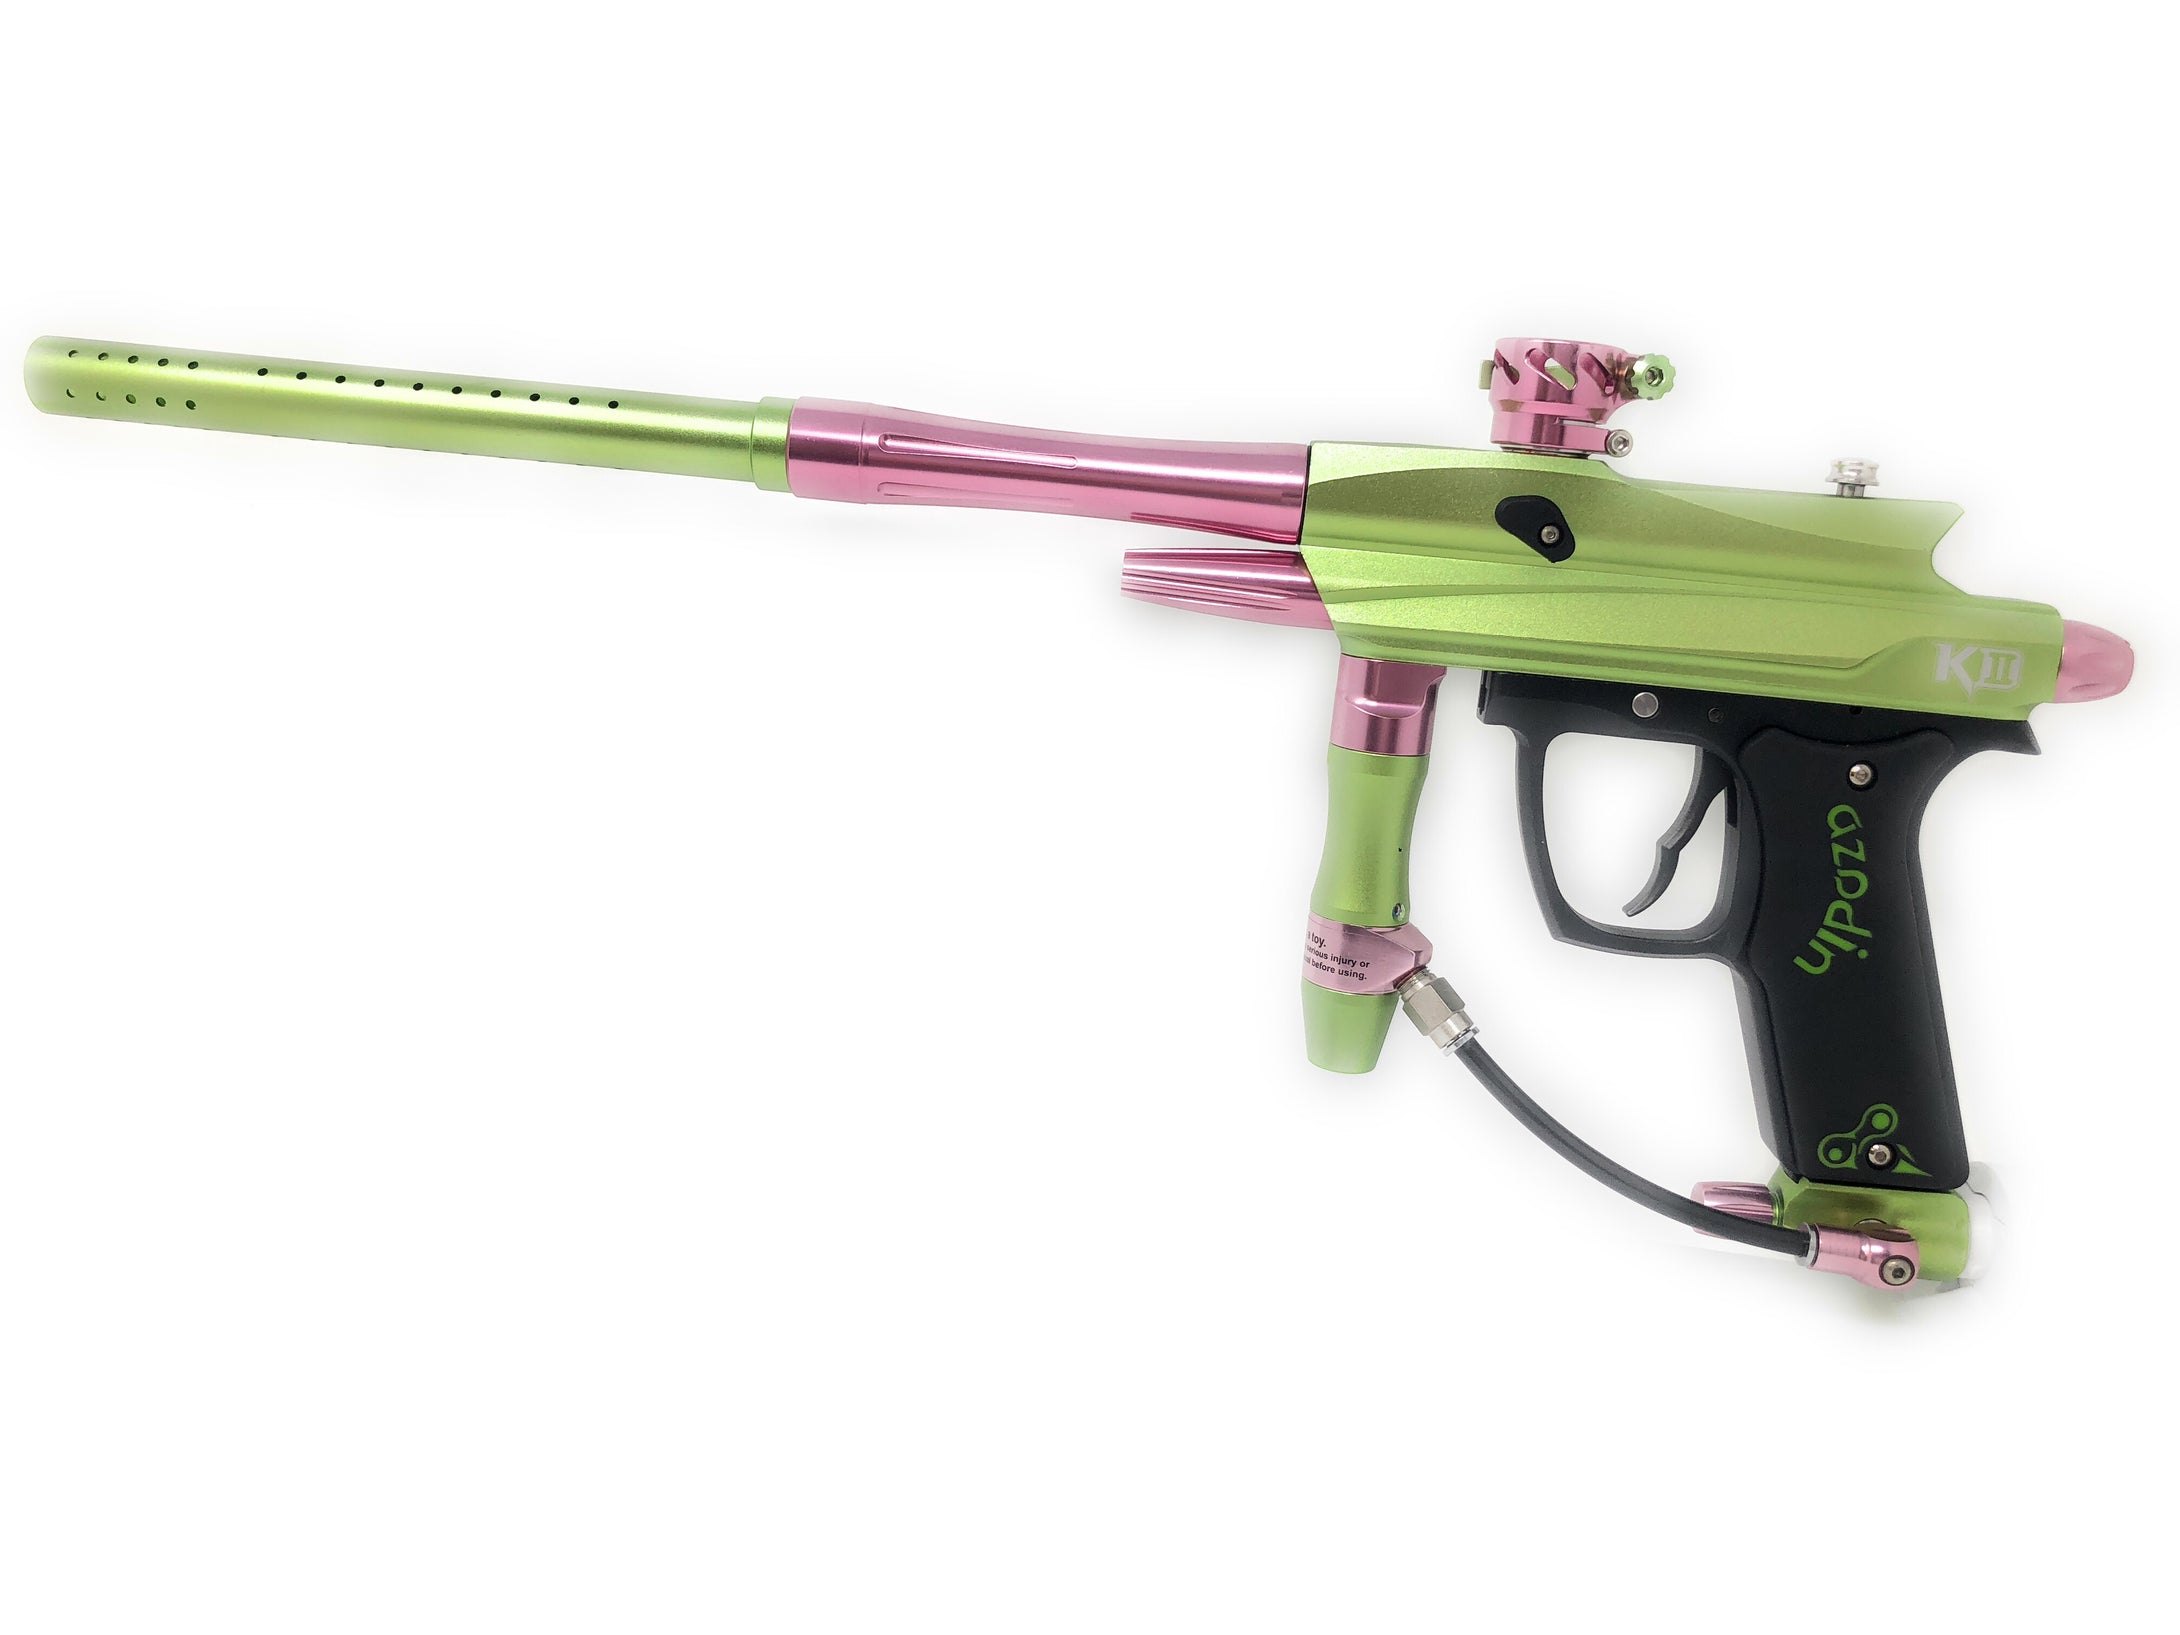 Photos of Azodin KD-II Paintball Marker - Watermelon (Green/Pink). Photo taken by drpaintball.com